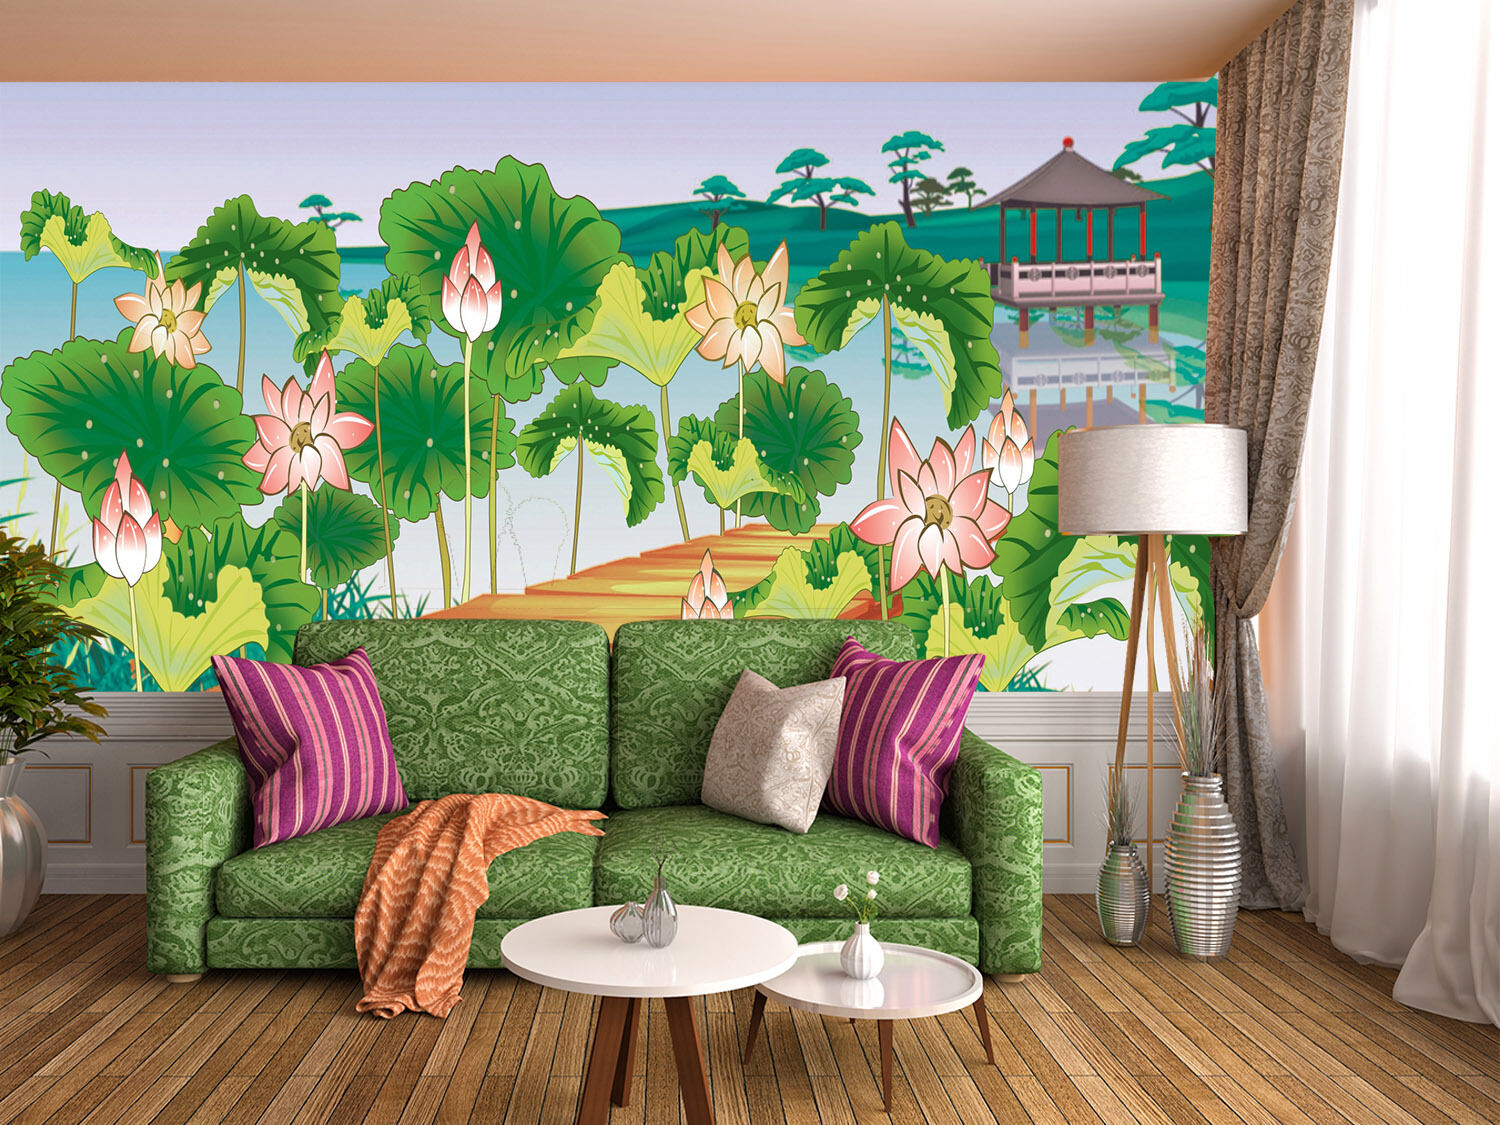 3D Lake Lotus Flowers 117 Wallpaper Decal Dercor Home Kids Nursery Mural  Home